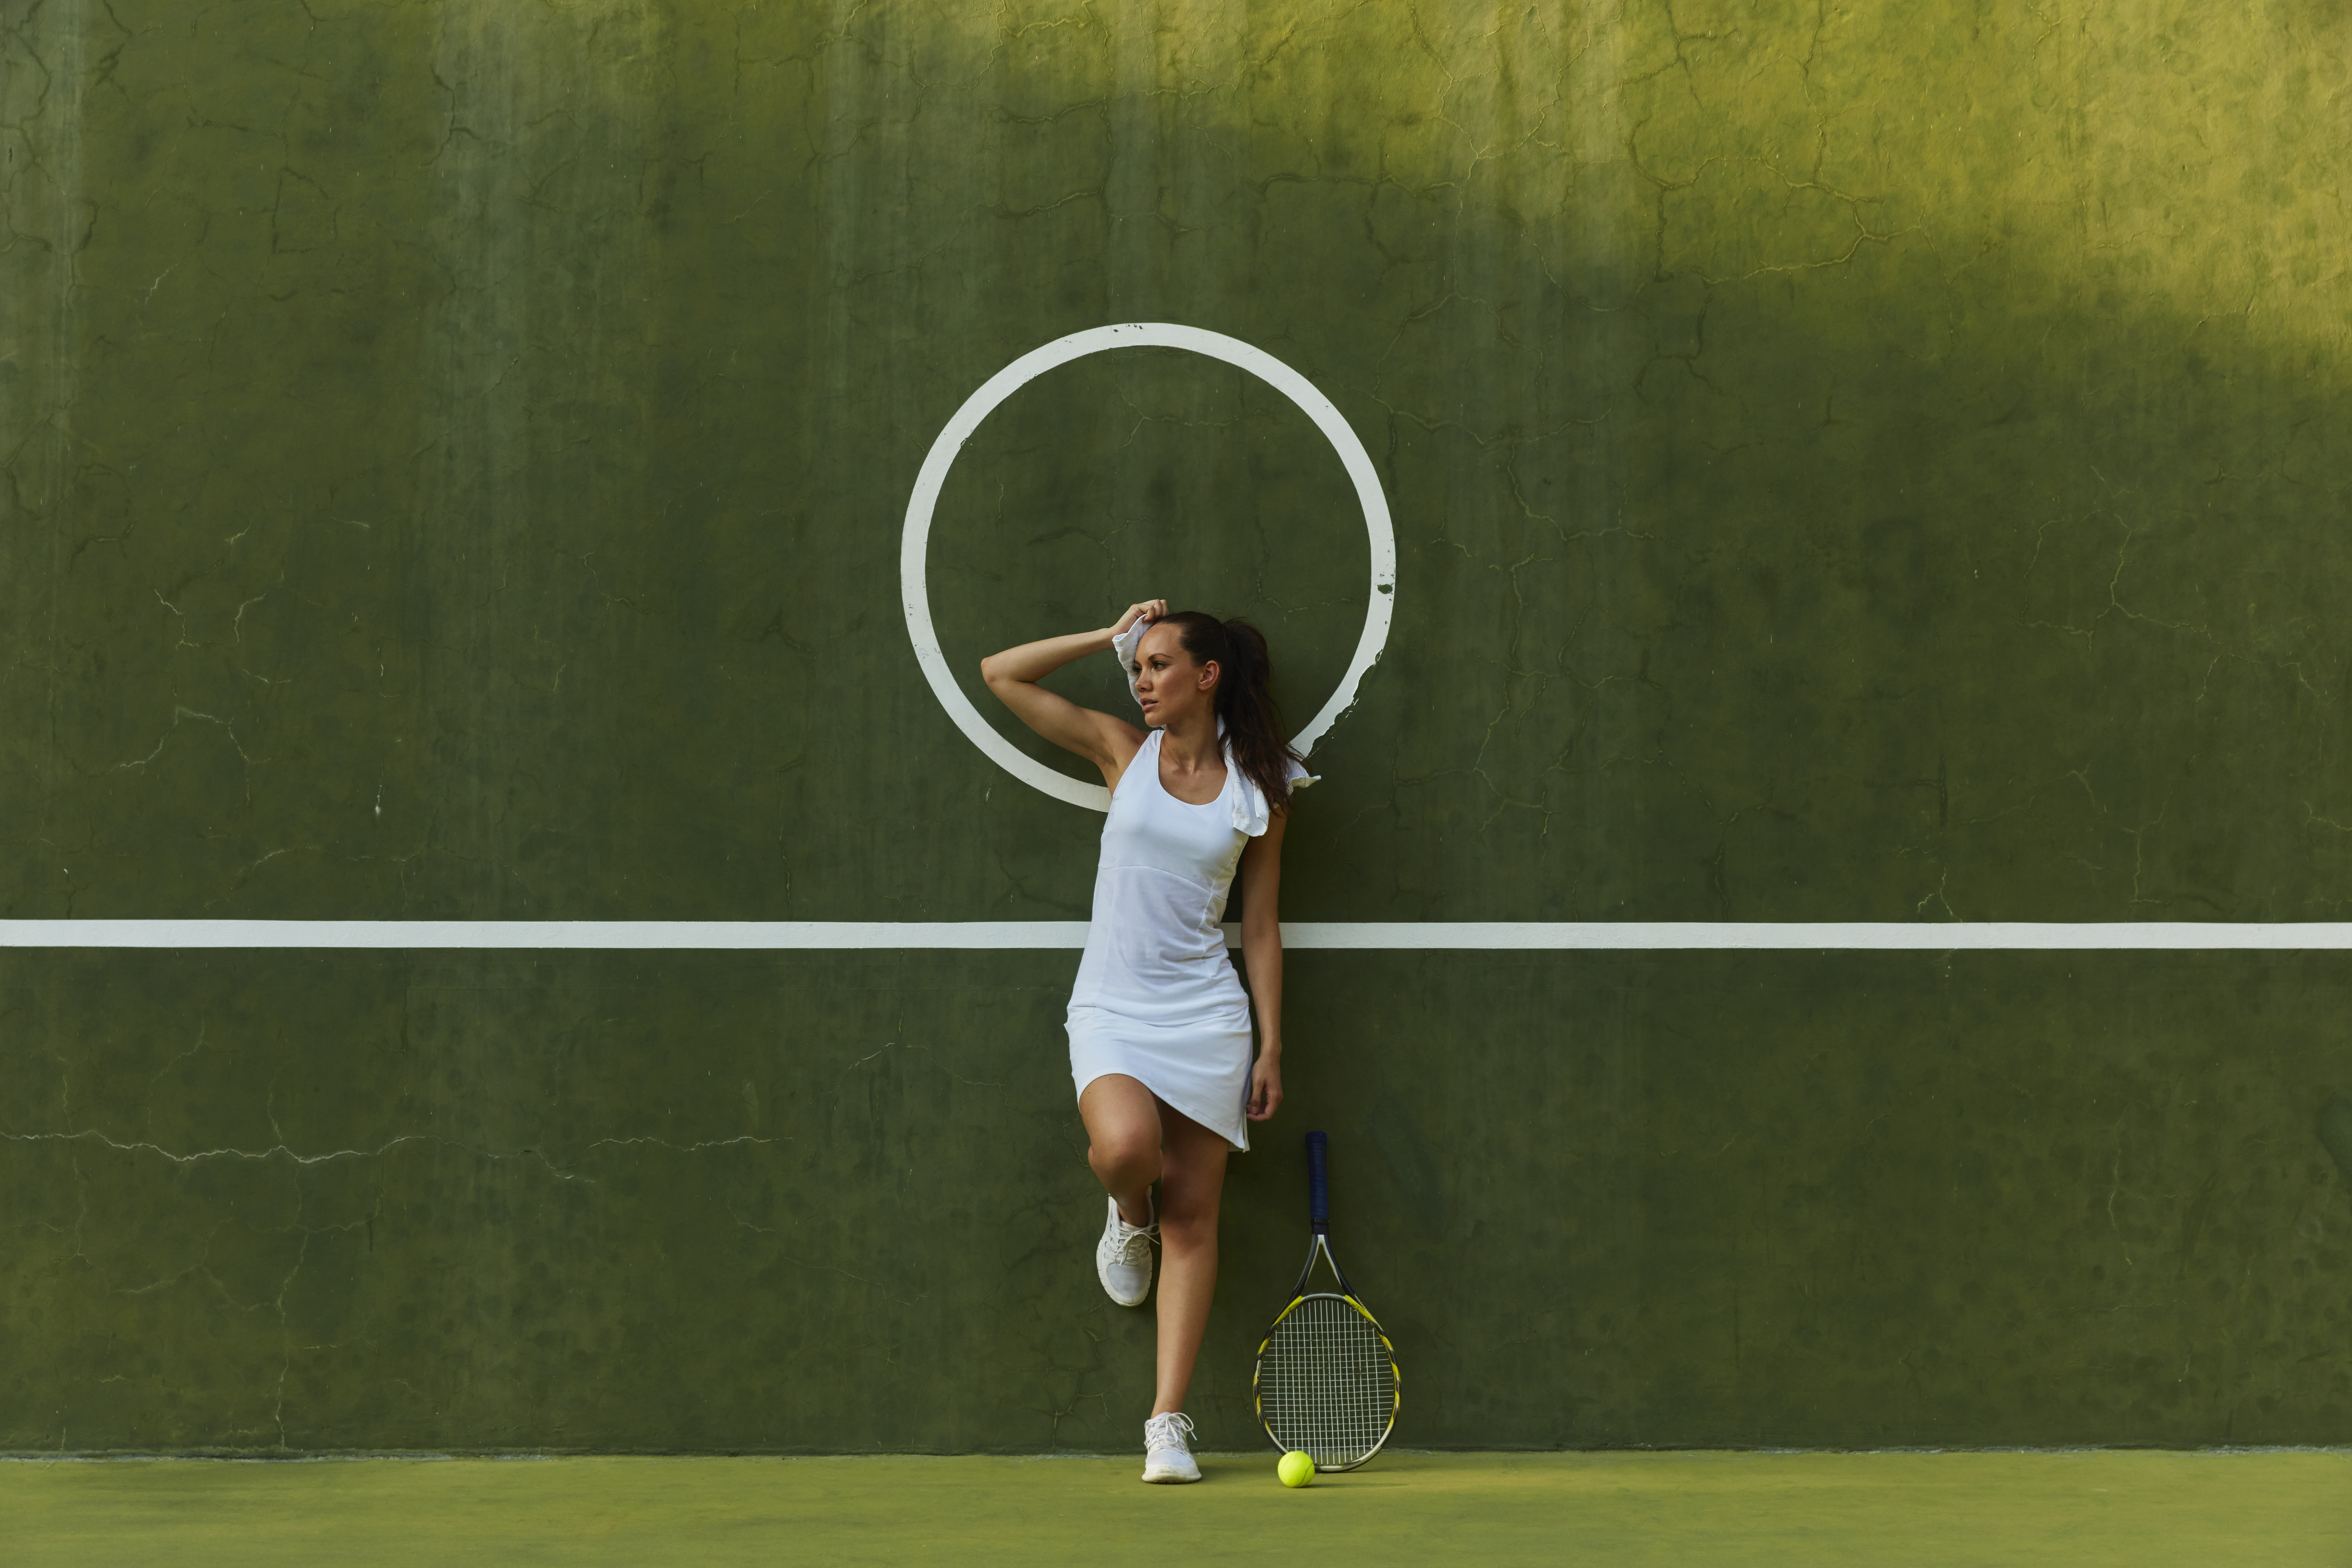 A woman poses in a white tennis dress, holding a tennis racket against a green wall.